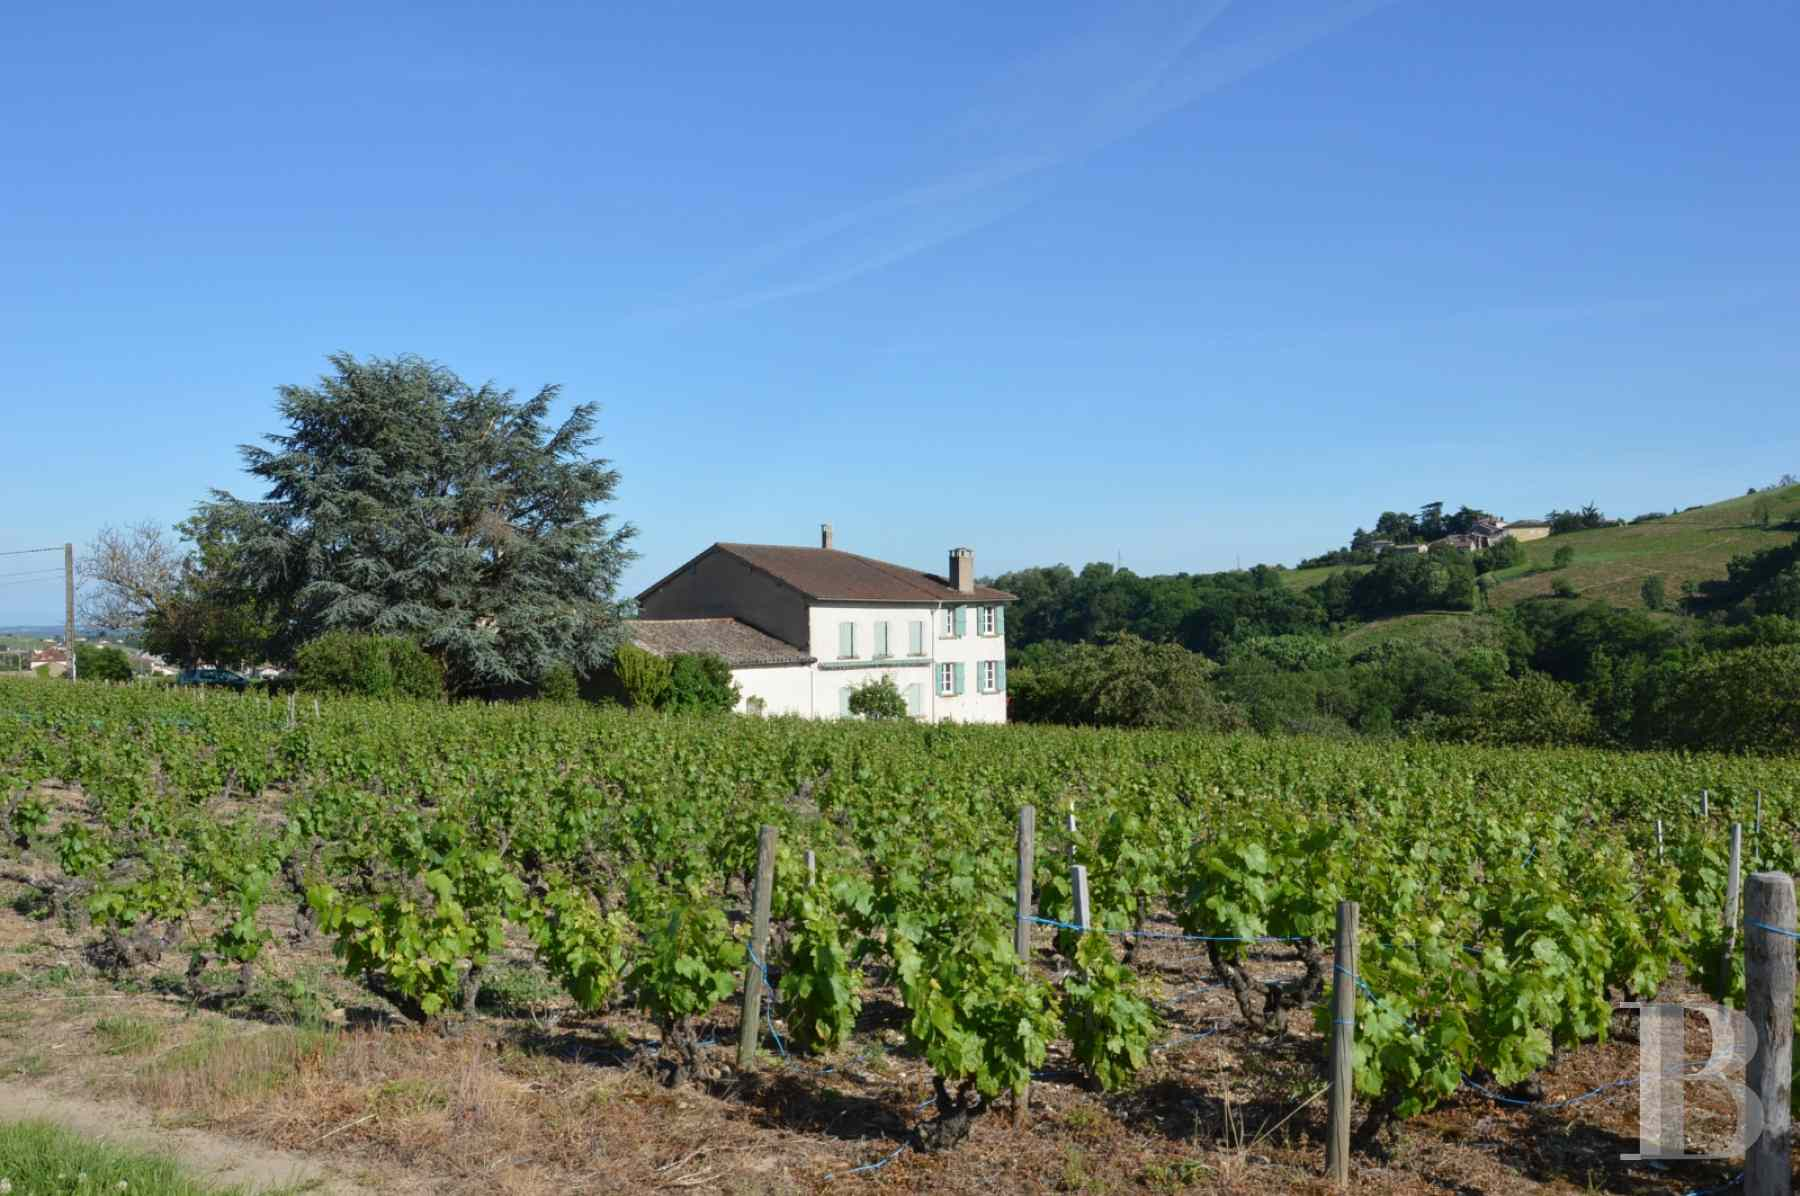 character properties France rhones alps vines beaujolais - 1 zoom